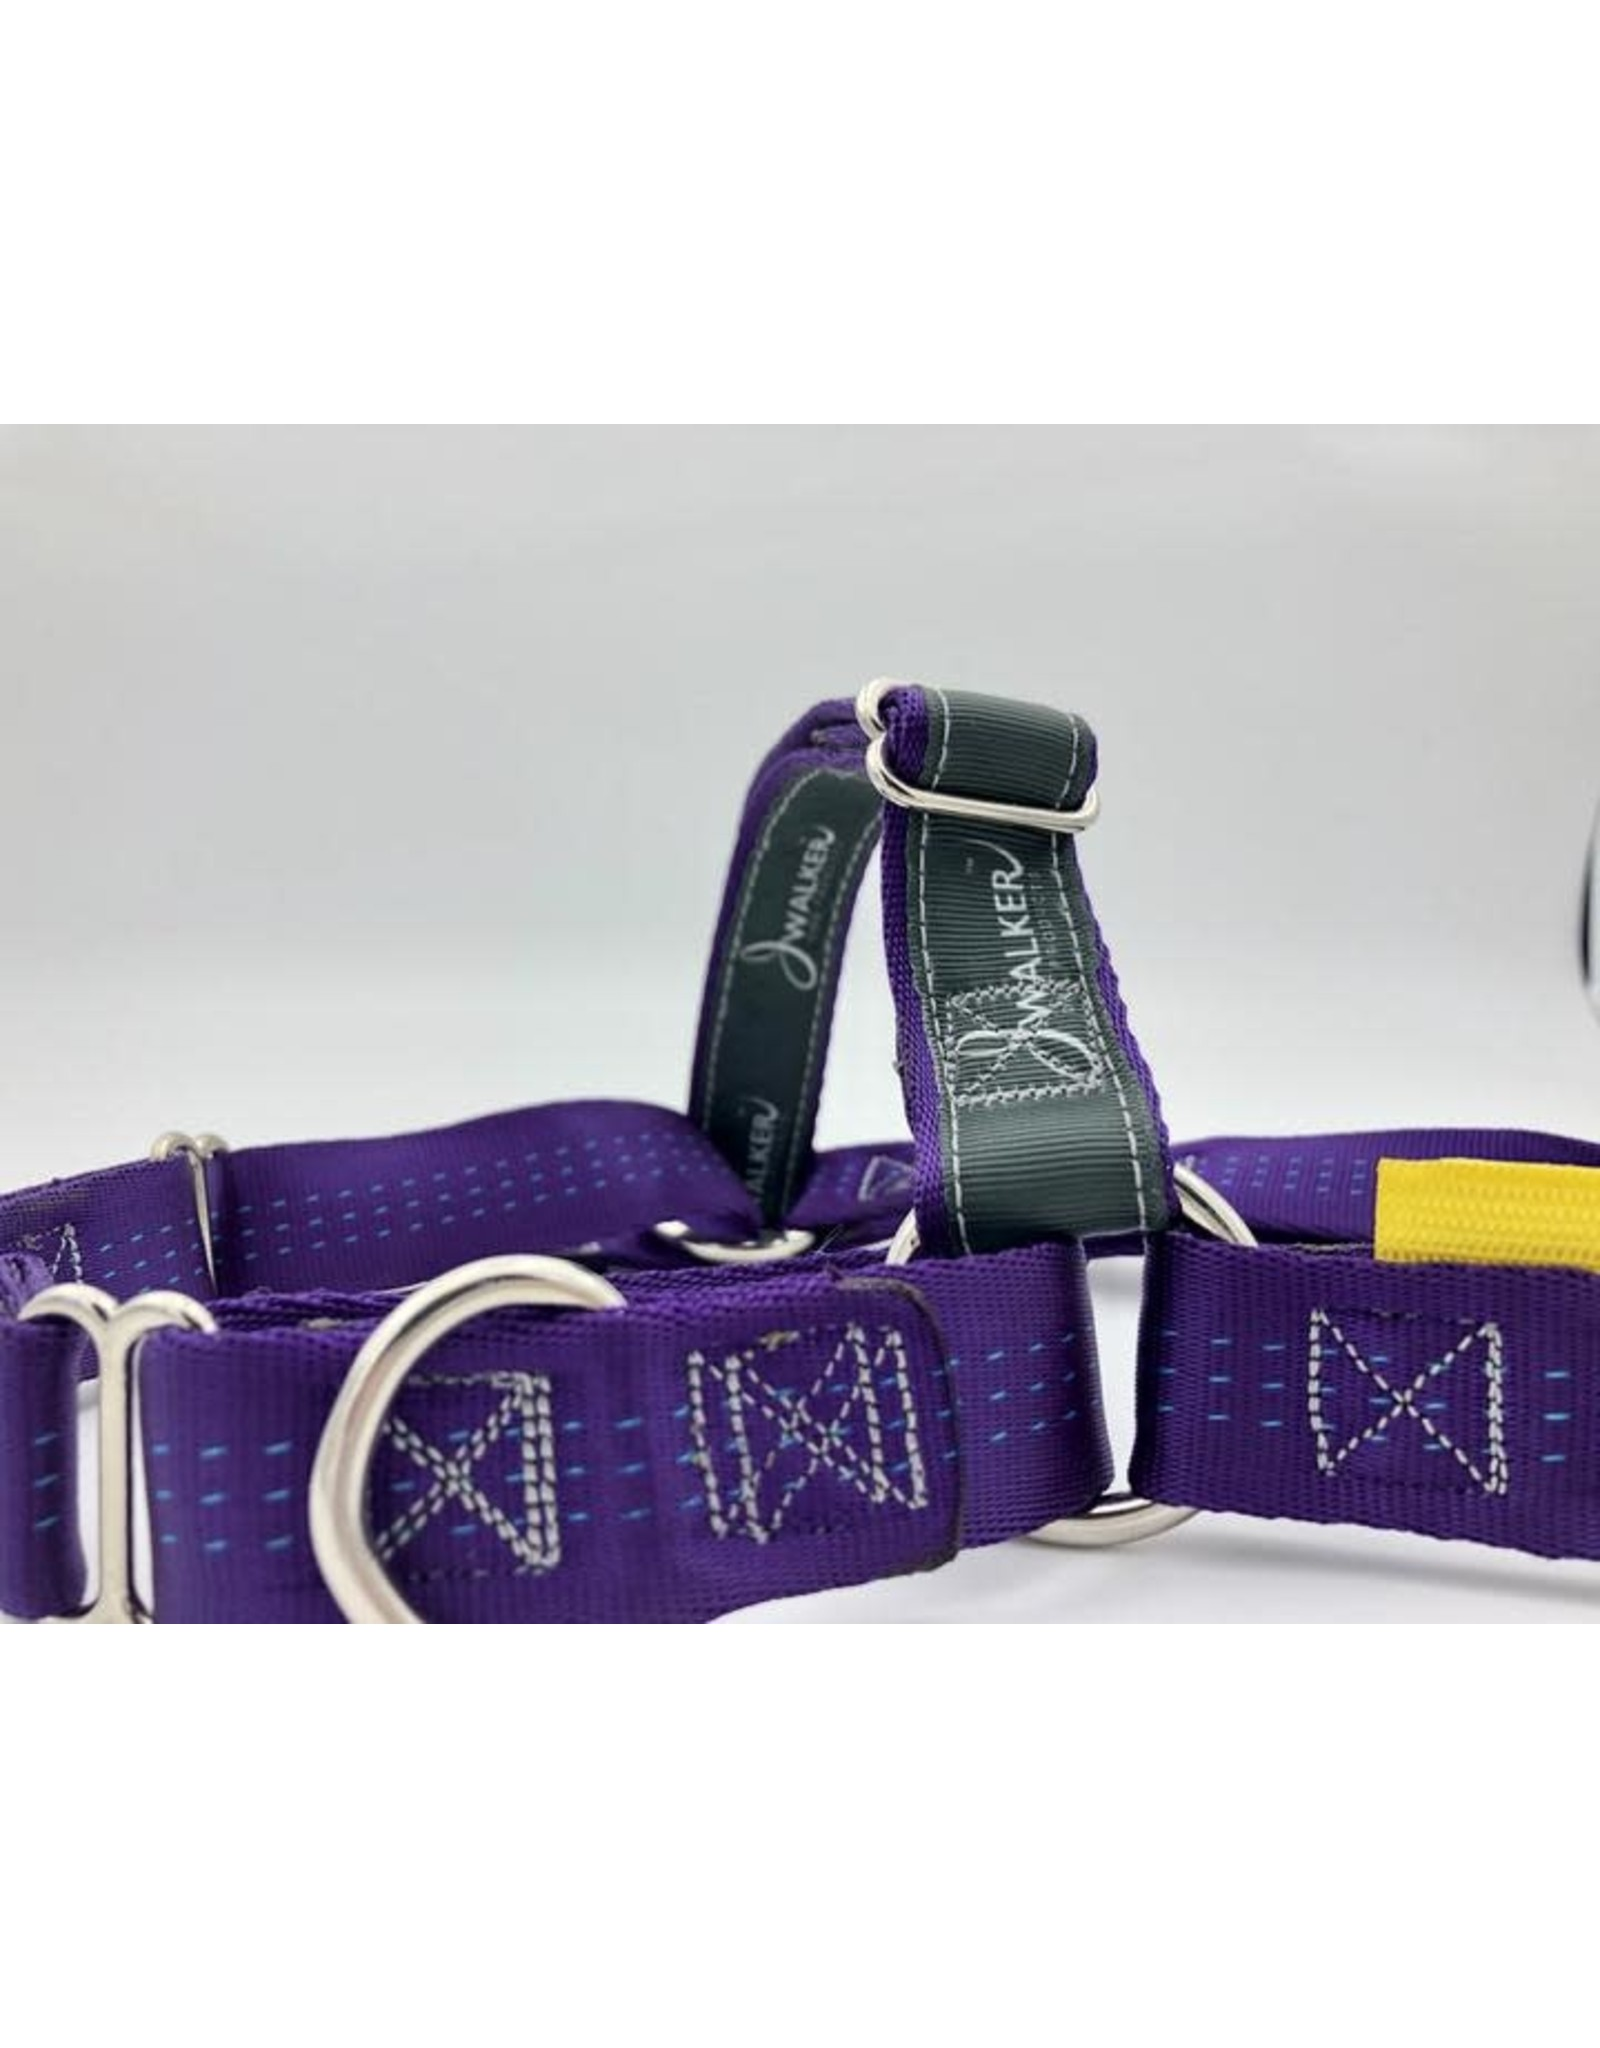 JWalker JWalker Harness - Purple - S/M